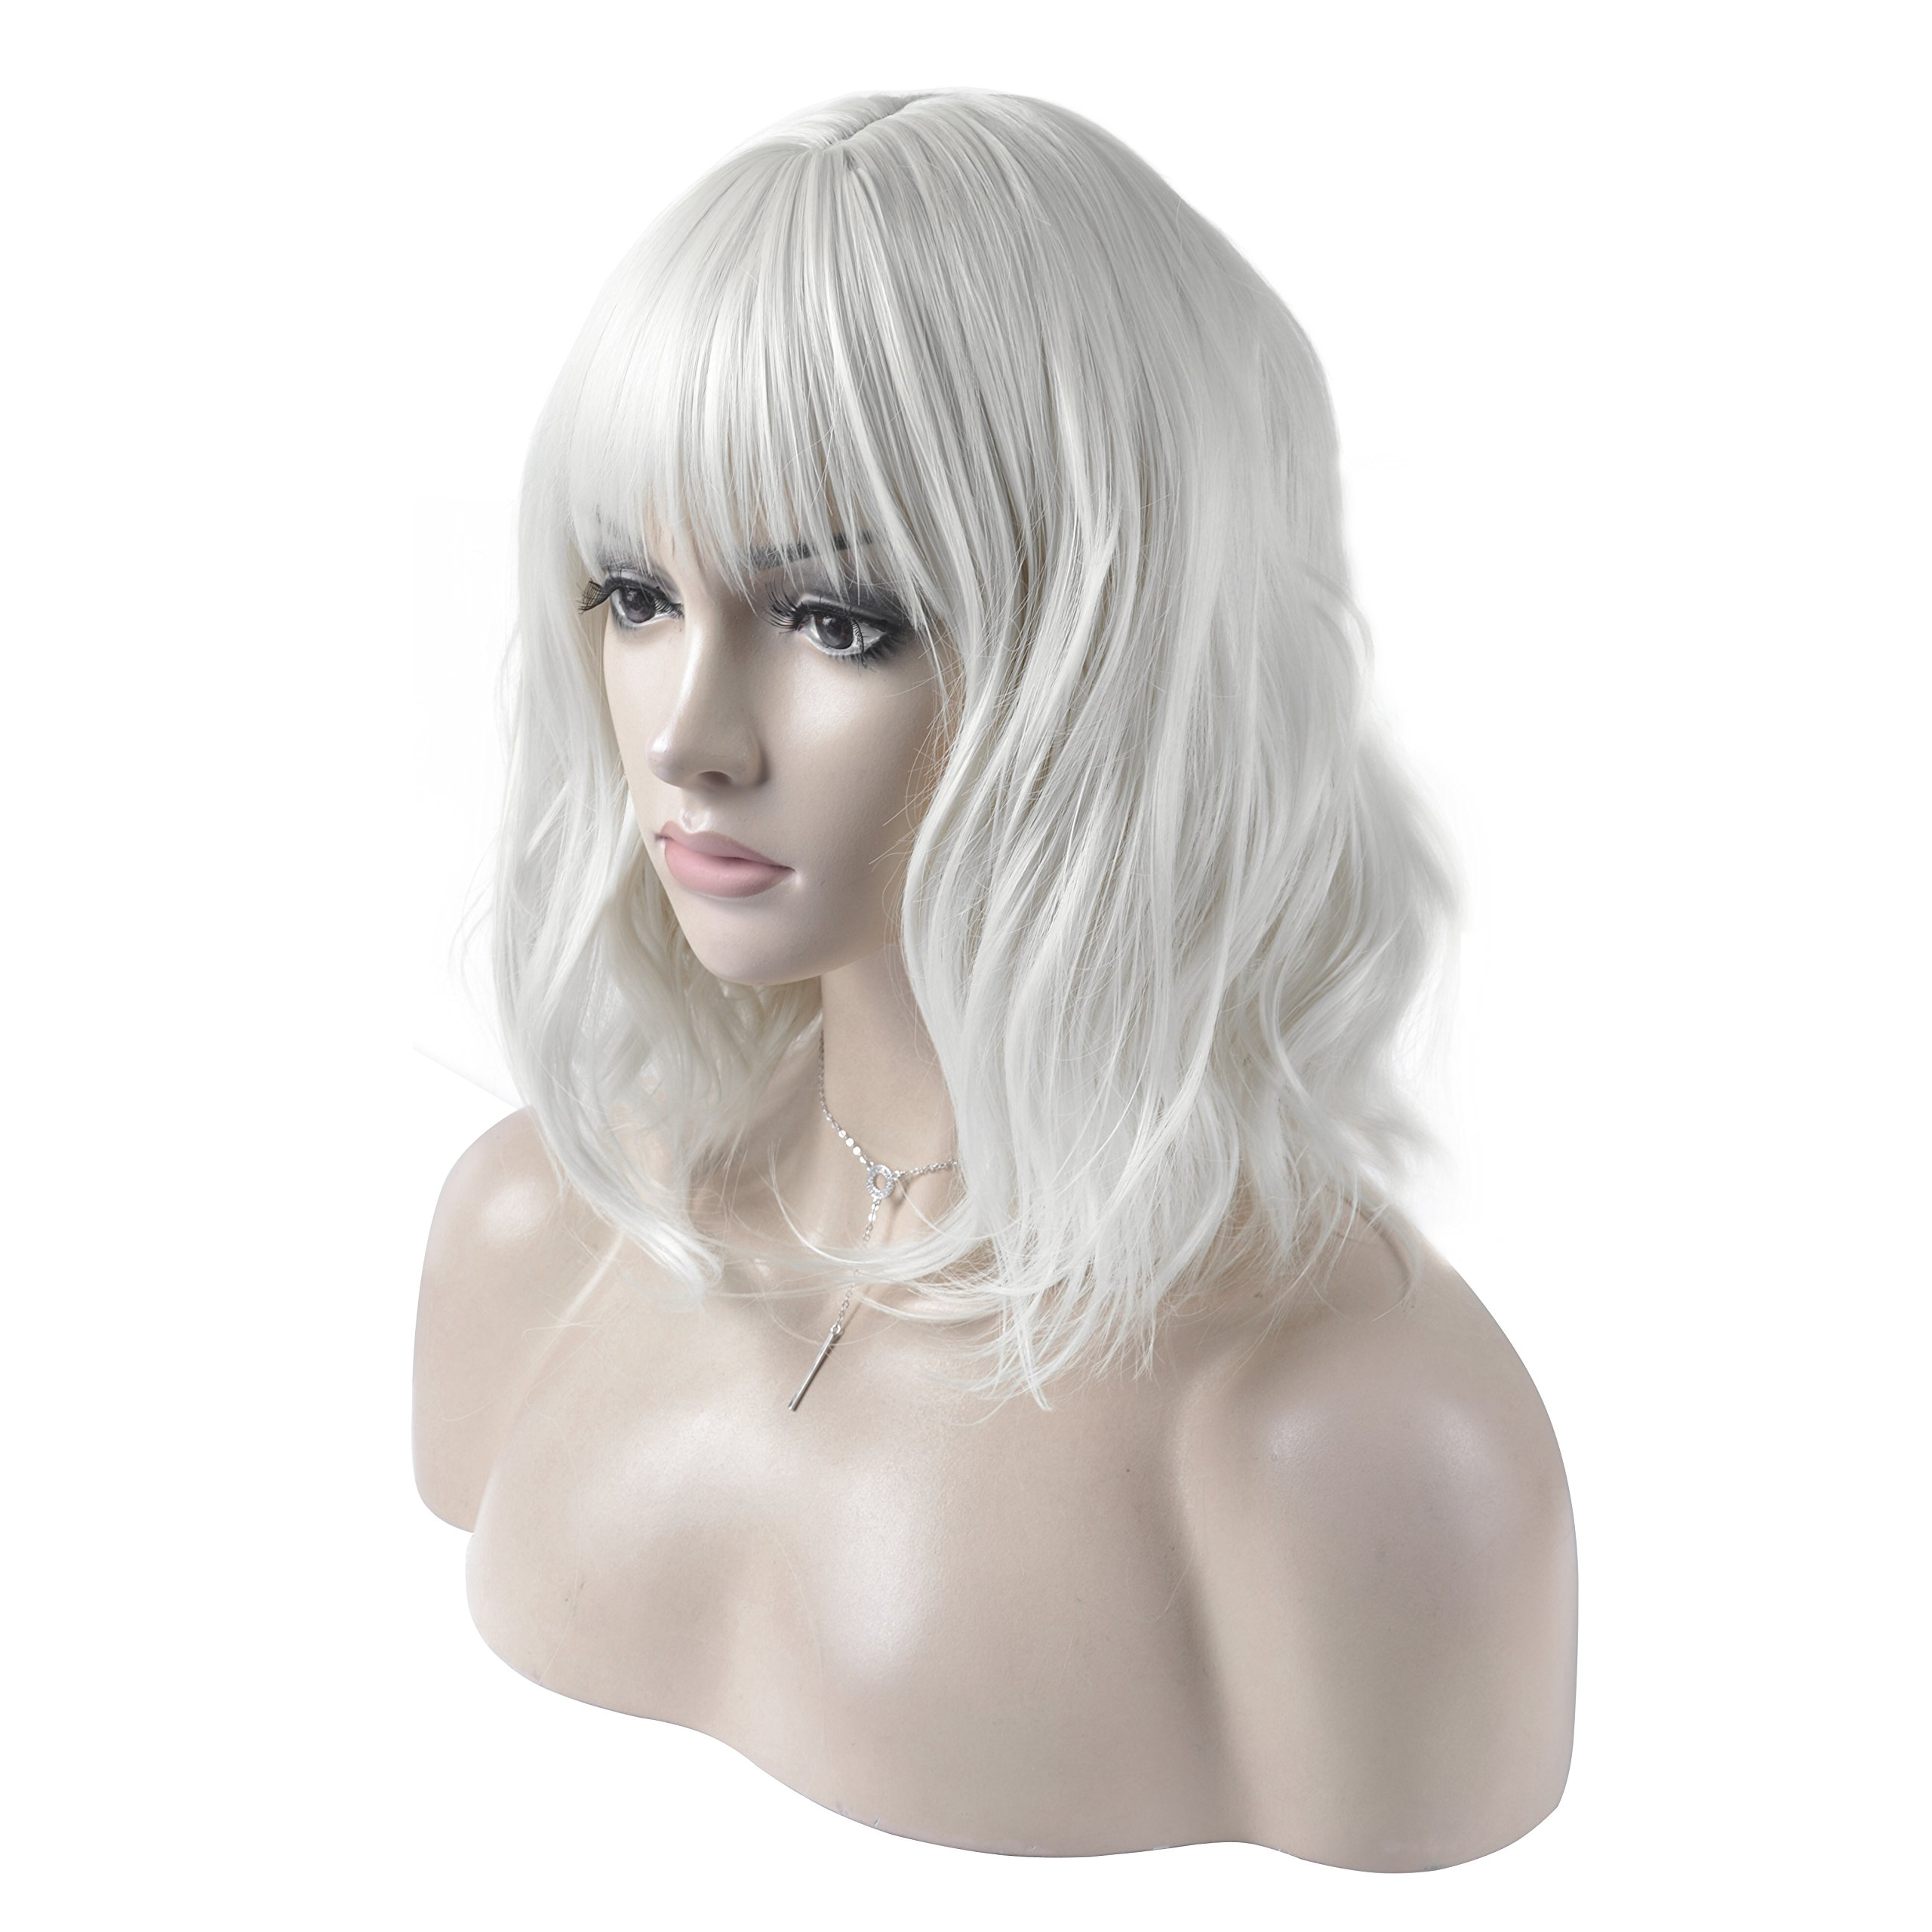 DAOTS 14 Inches Curly Wigs with Bangs for Women Girls Heat Resistant Synthetic Hair Wig (Silver White) by DAOTS